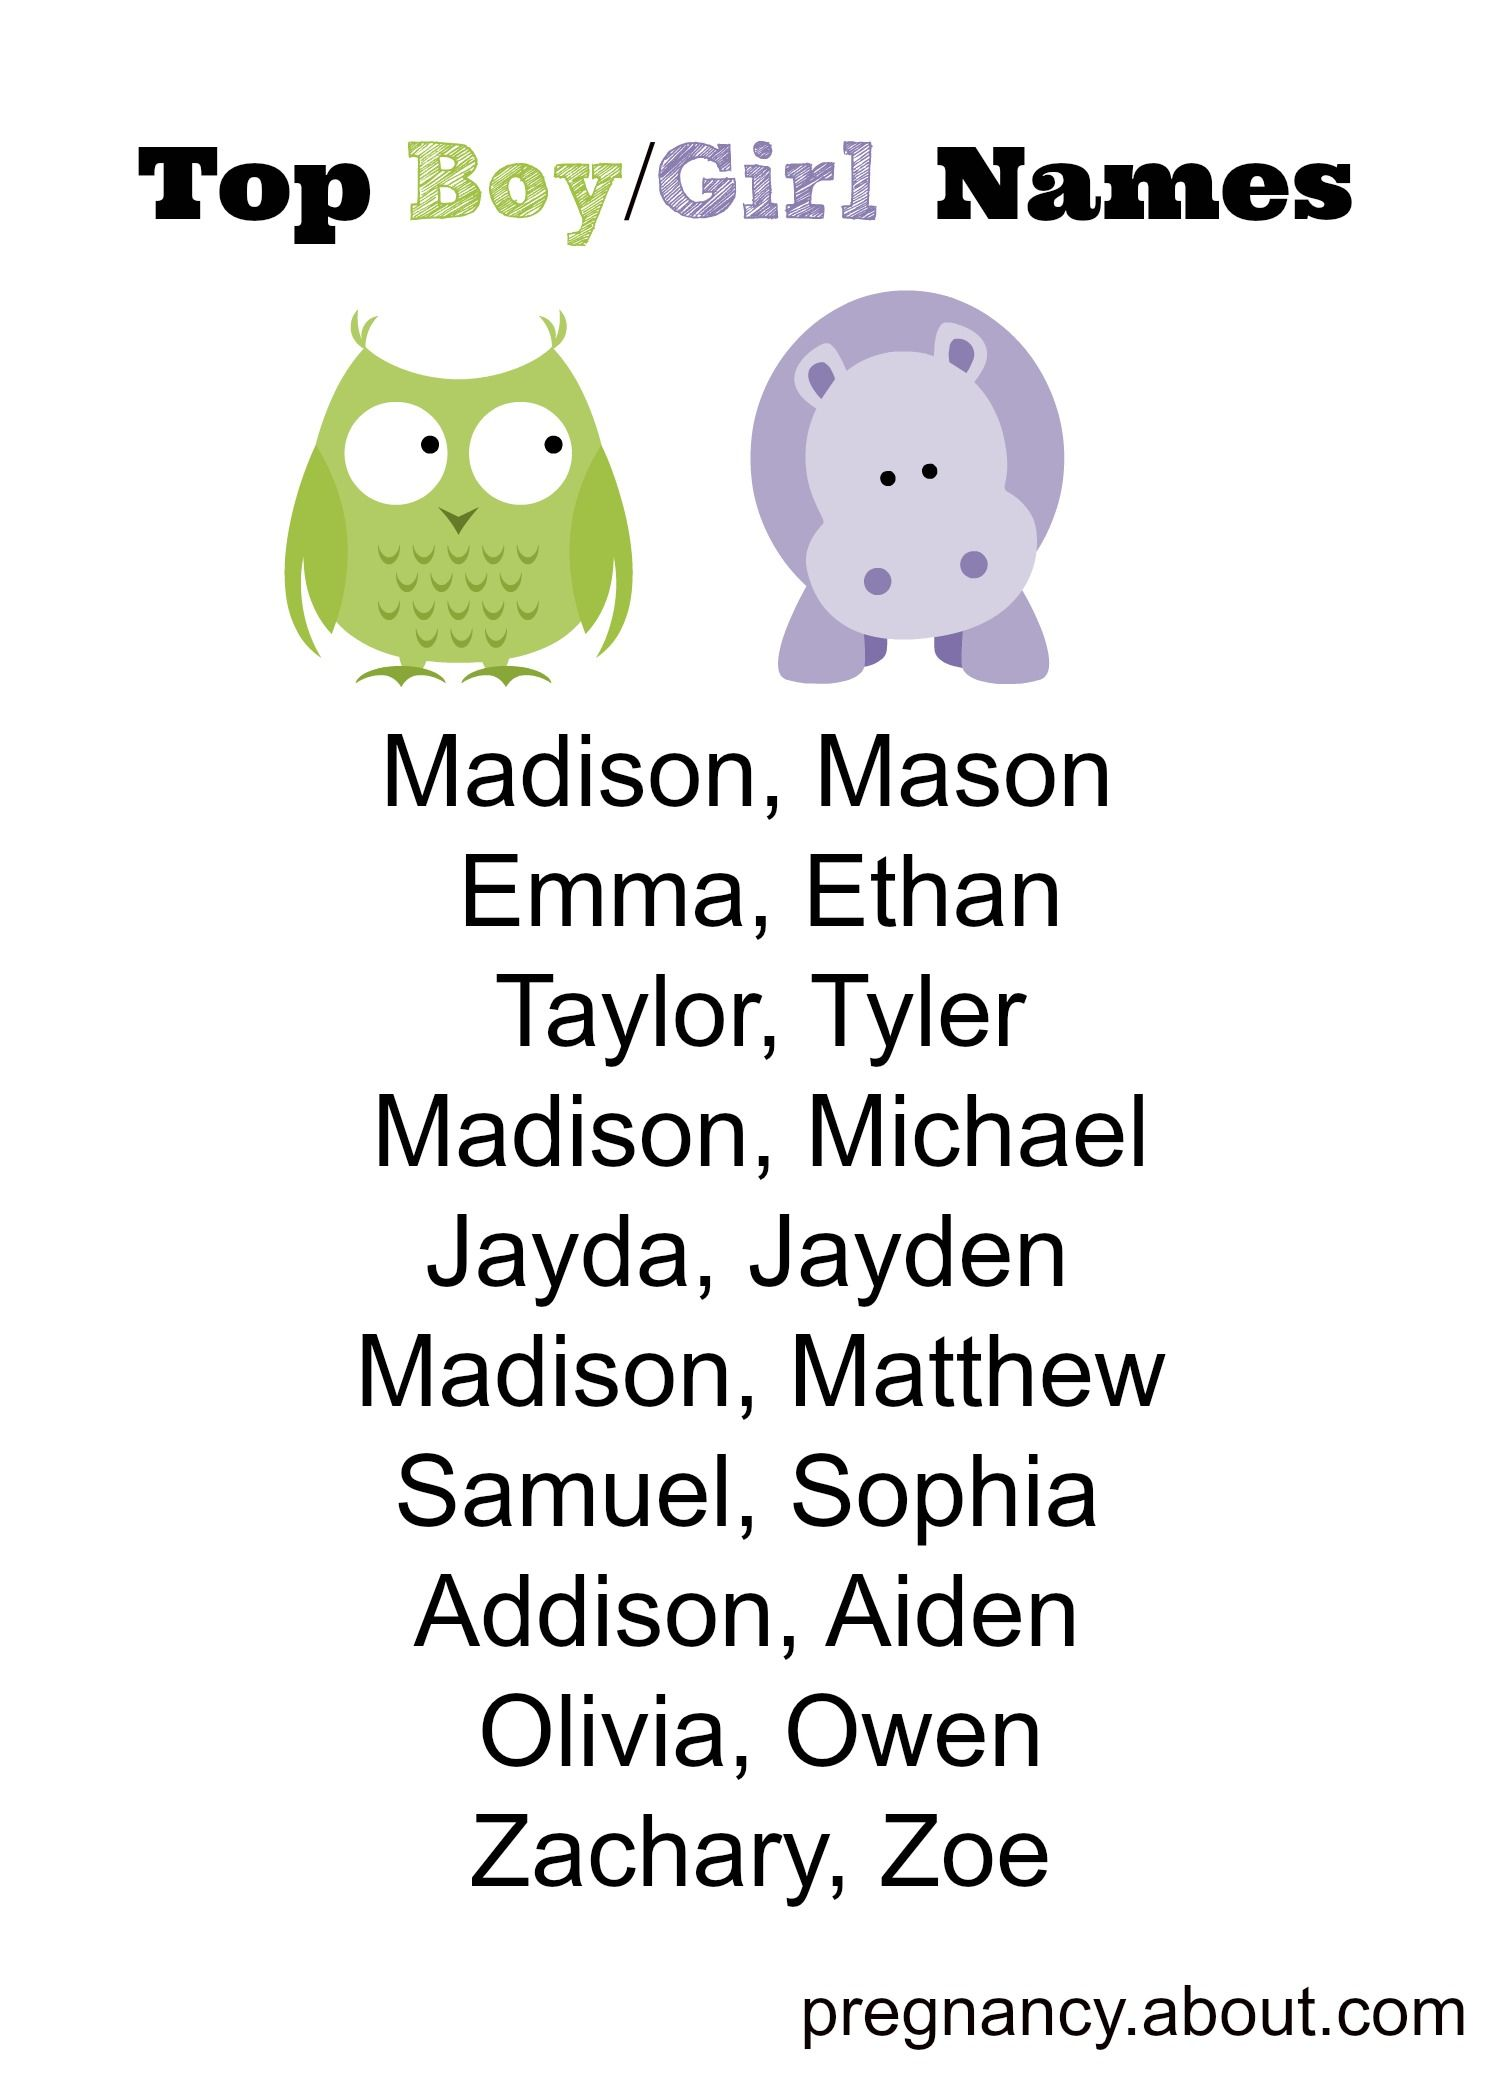 Name Combinations For Boy Girl Twins Can Be A Fun Challenge Here Are Some Classic Options Twin Baby Names Baby Names Baby Boy Names